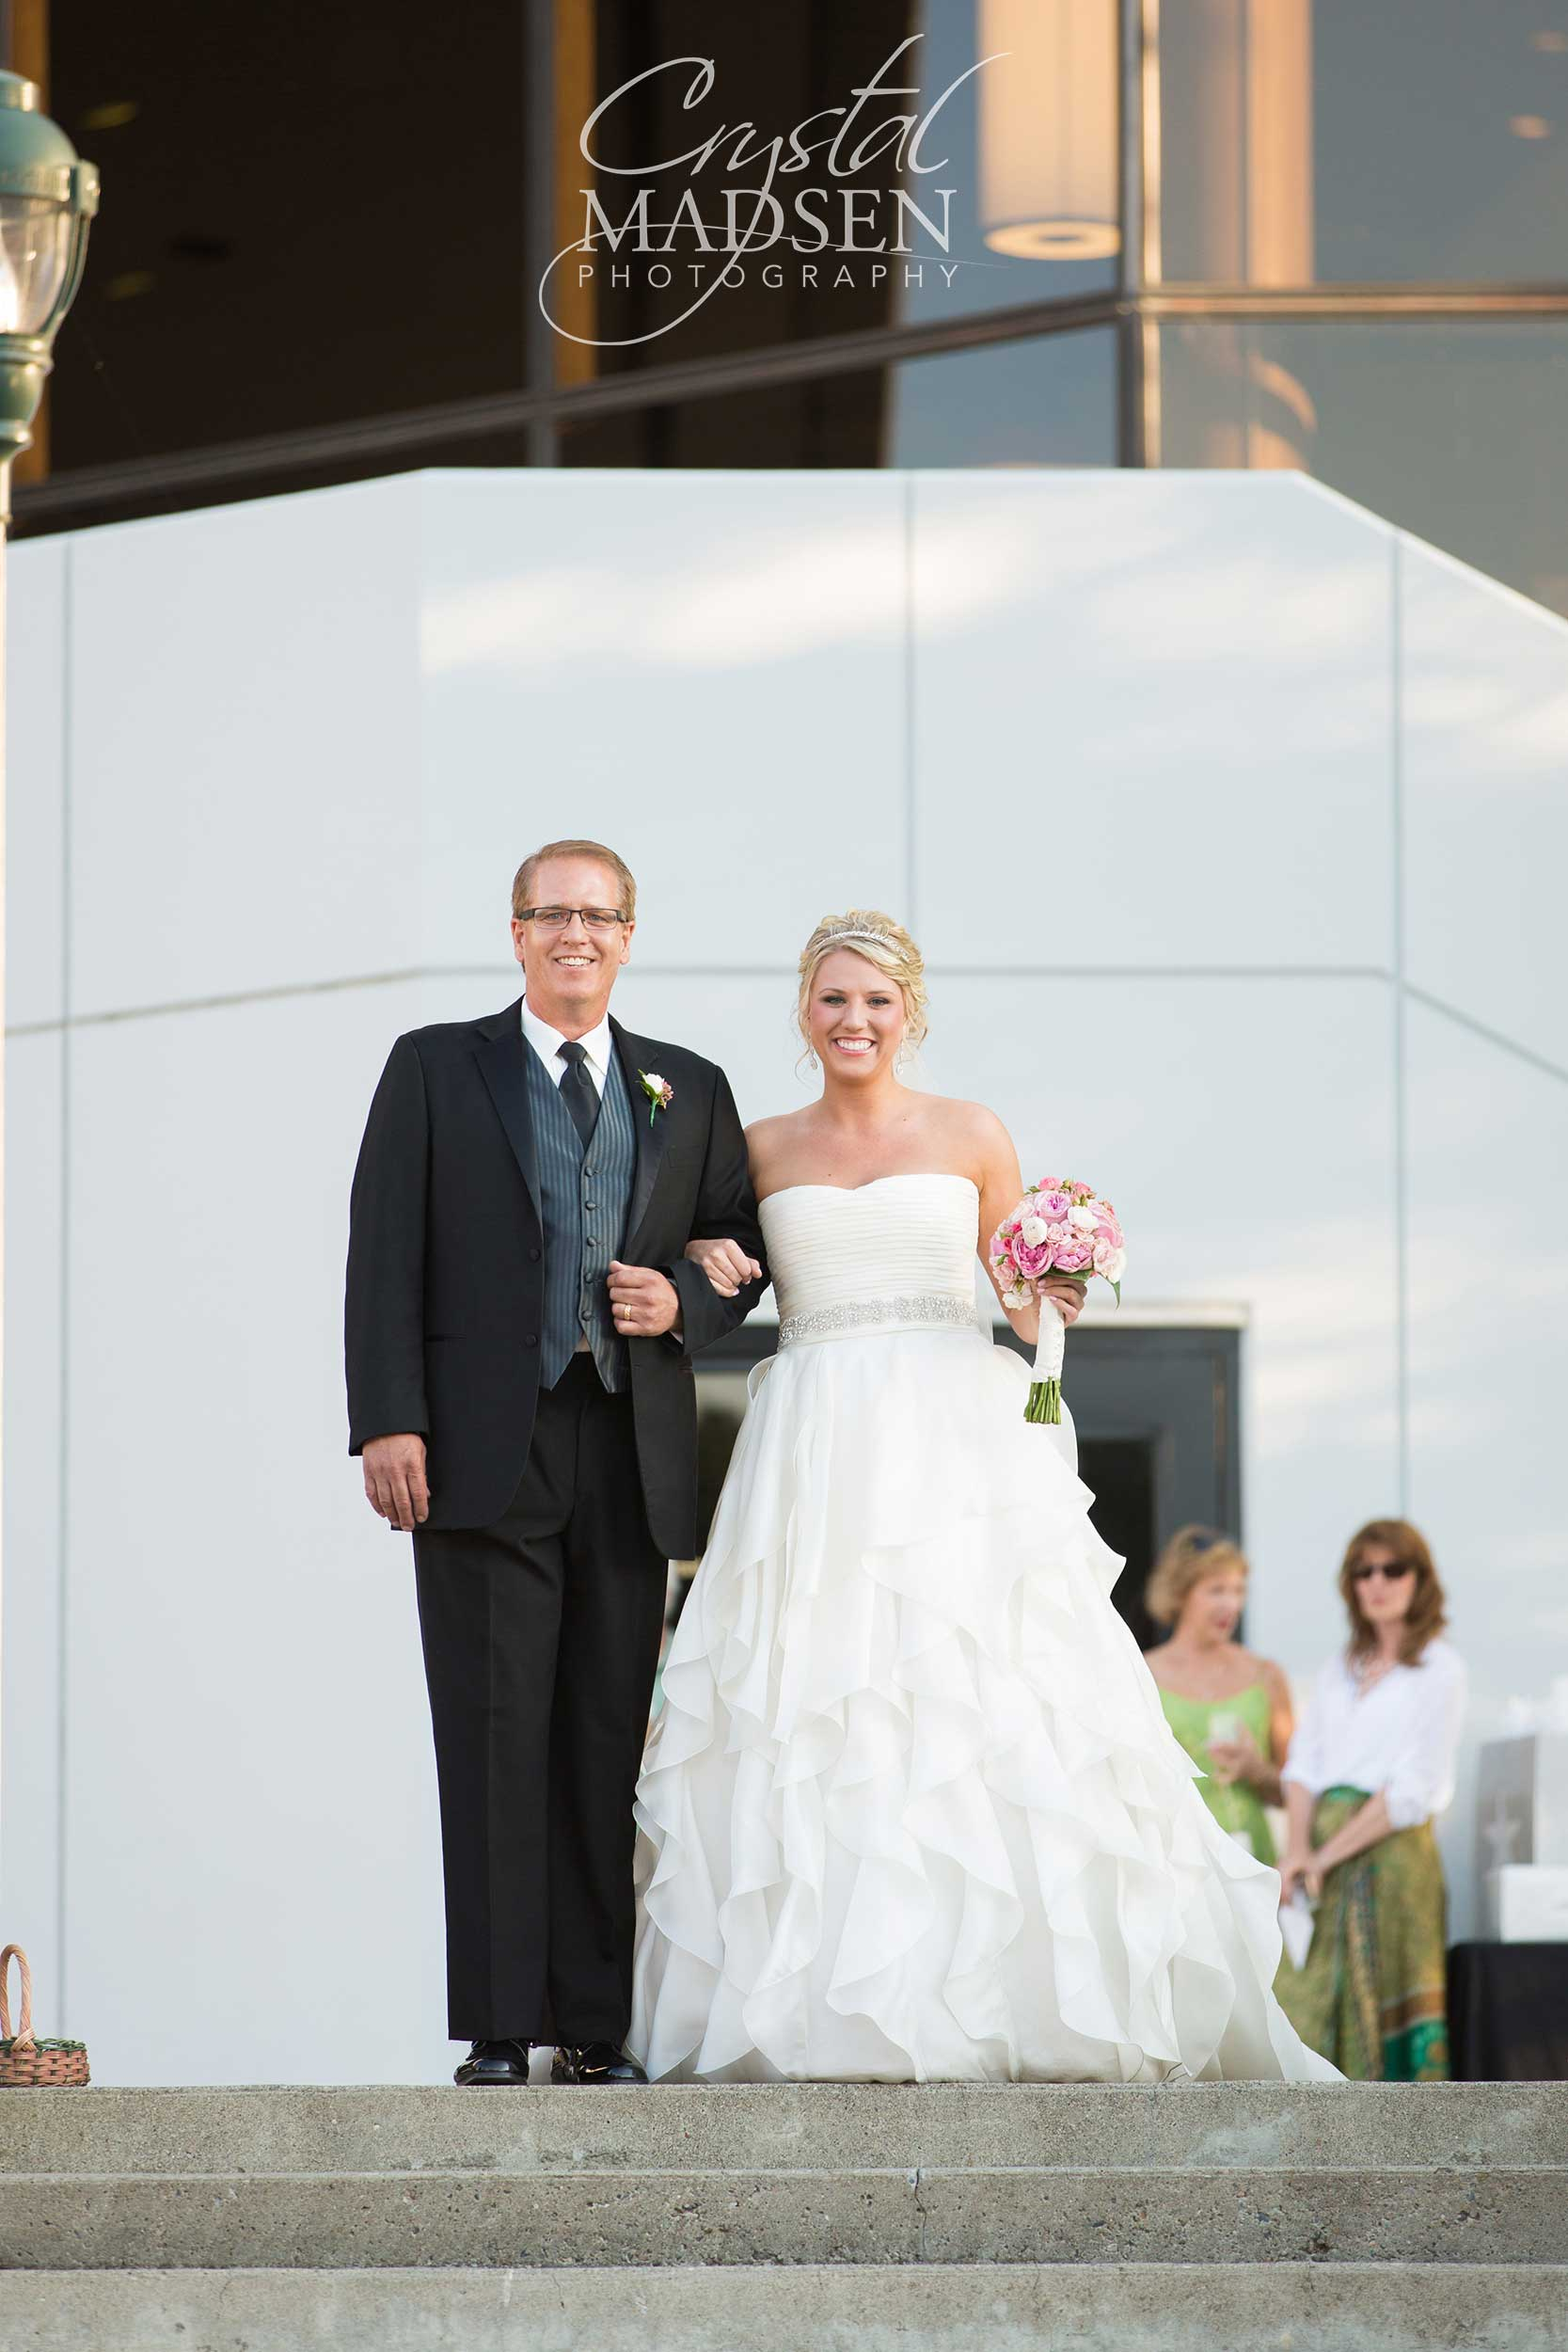 Spokane convention center weddings